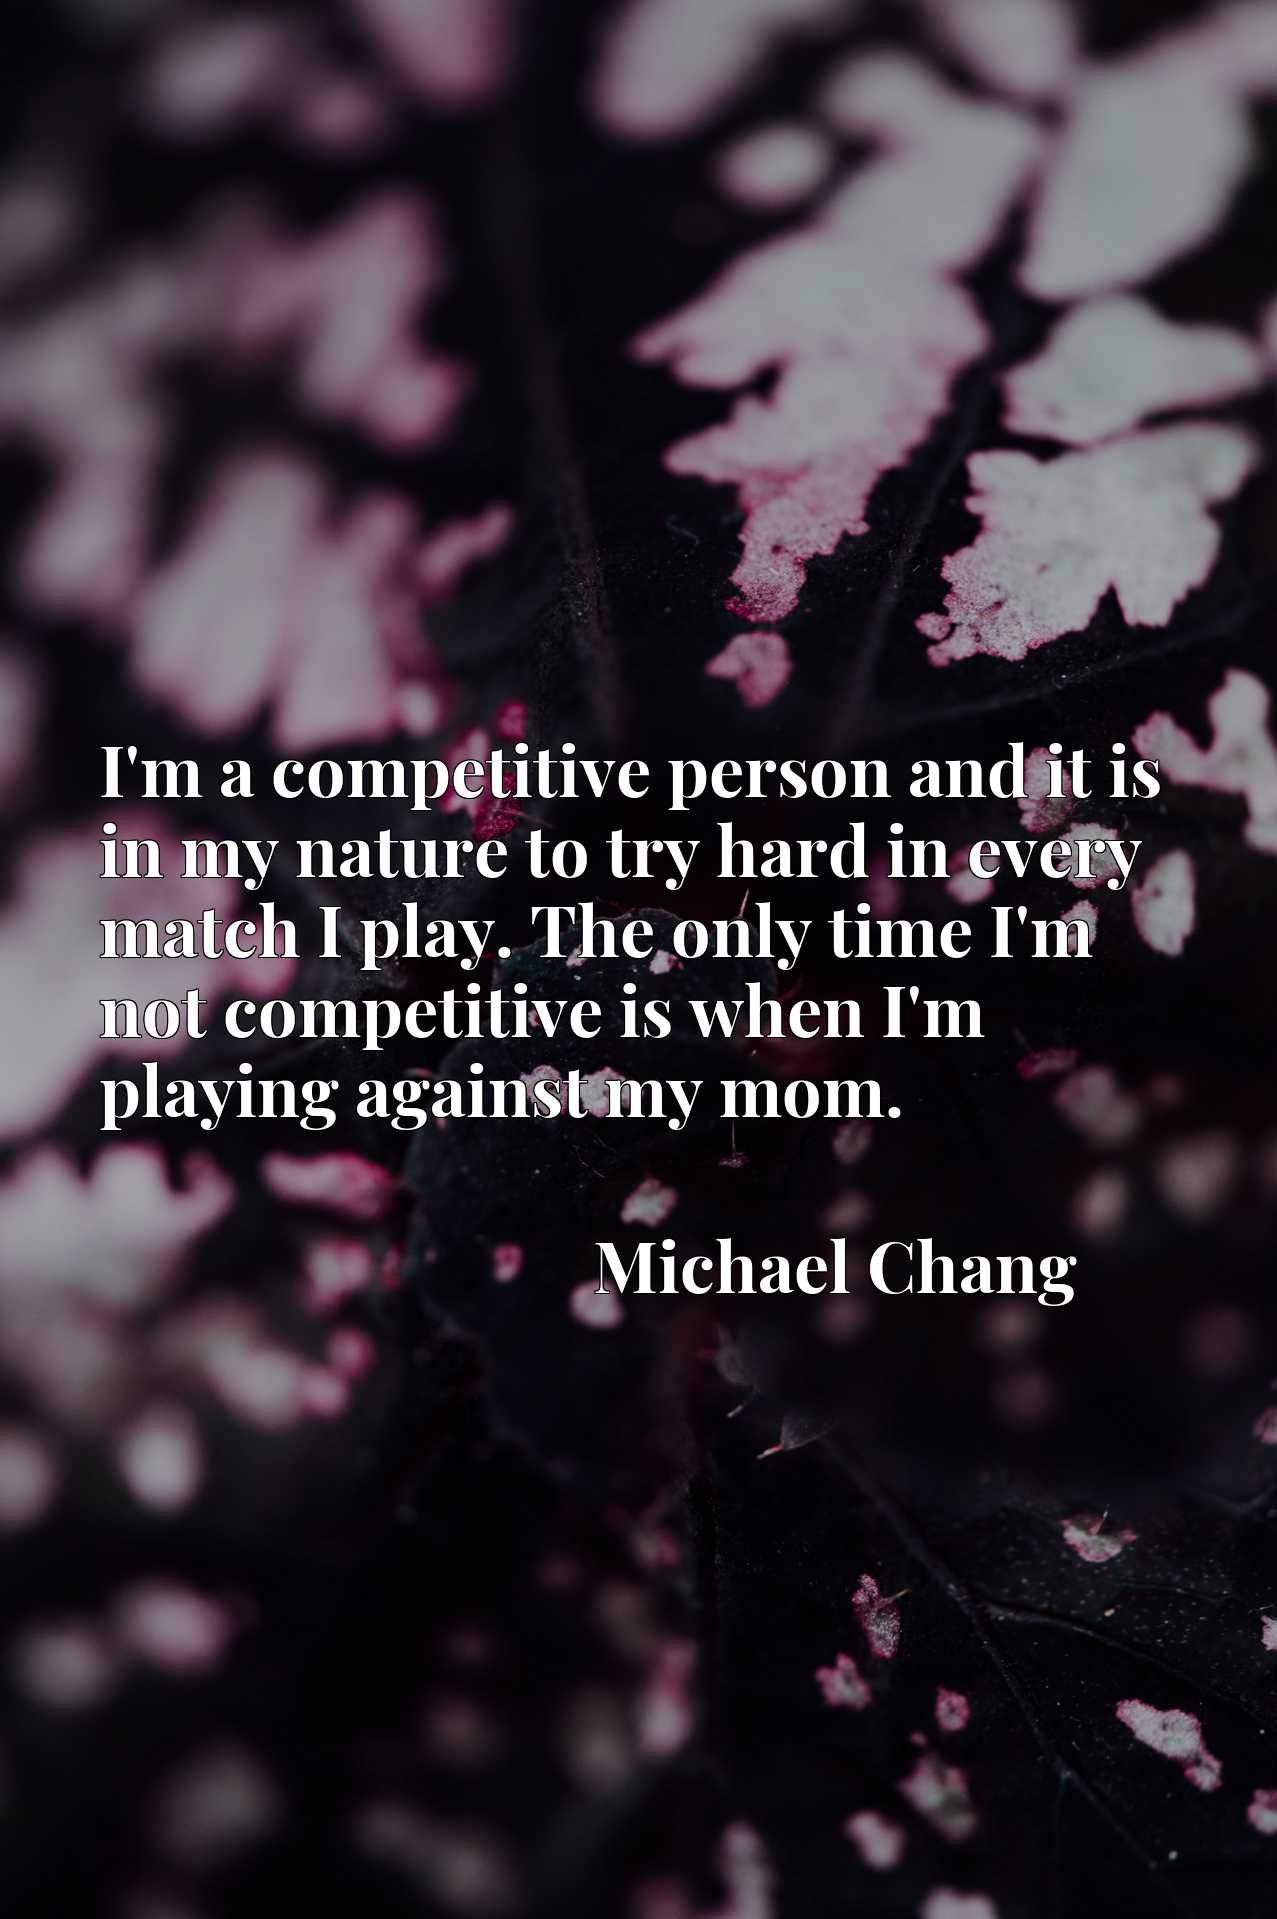 I'm a competitive person and it is in my nature to try hard in every match I play. The only time I'm not competitive is when I'm playing against my mom.